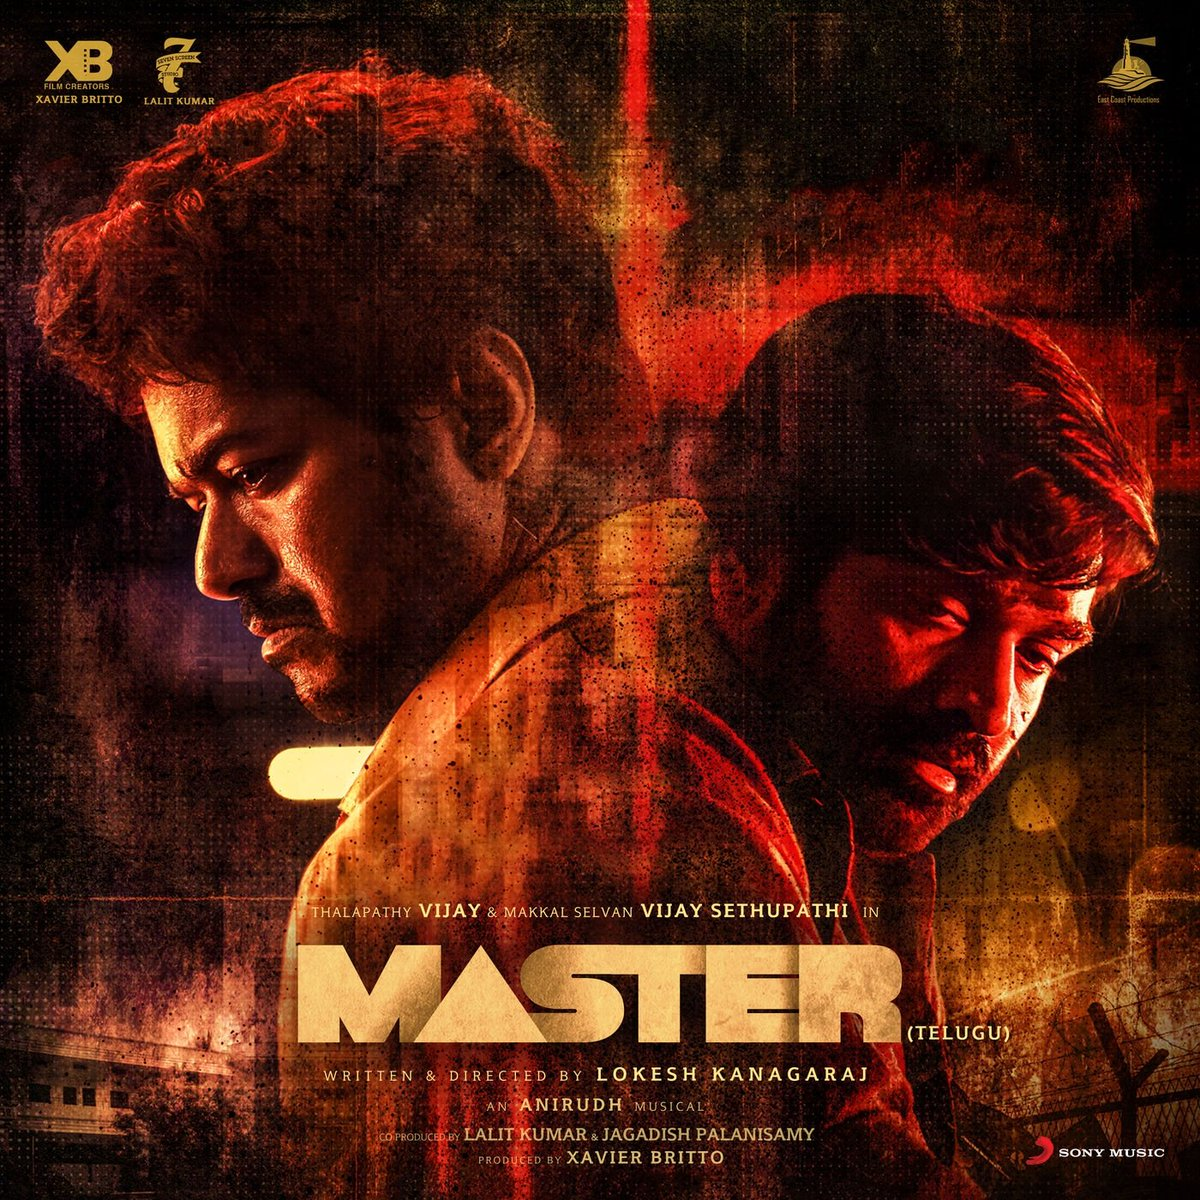 #Master #OneWordReview:- Tedious ⭐⭐1/2  A Movie Which Fails To Impress Due To Bad Direction  Positives:- #Vijay & #VijaySethupathi's Performance Decent Storyline Supporting Cast Music & BGM 🔥  Negatives:- Runtime [Too Lengthy] Weak Climax Editing Direction & Execution